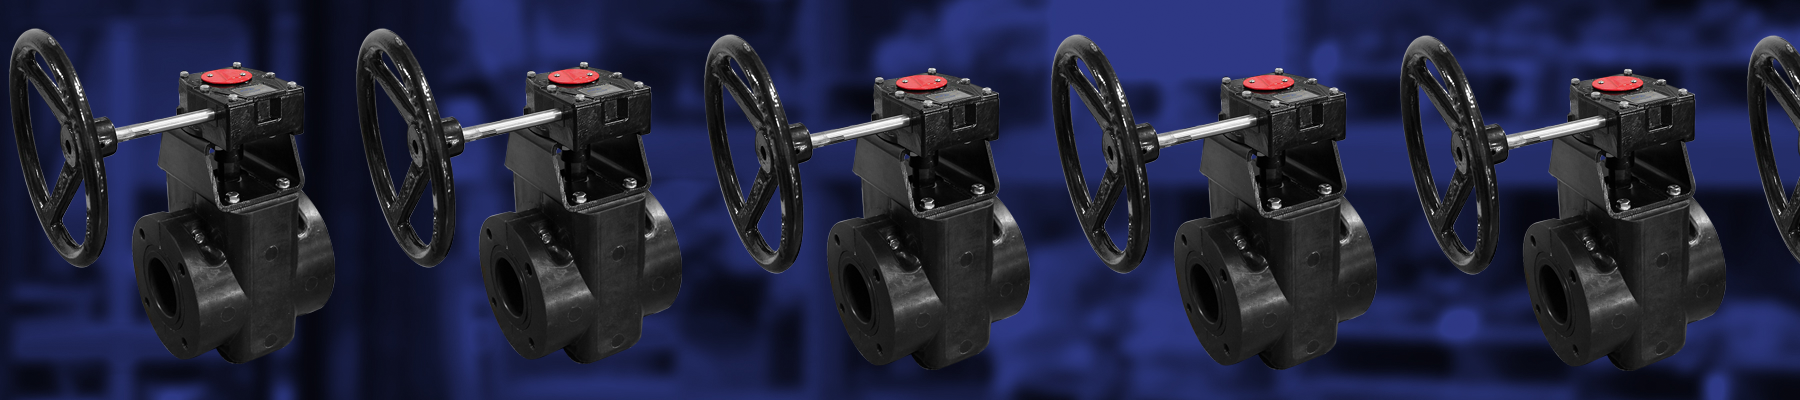 Handwheel Operated Rotary Pinch Valve